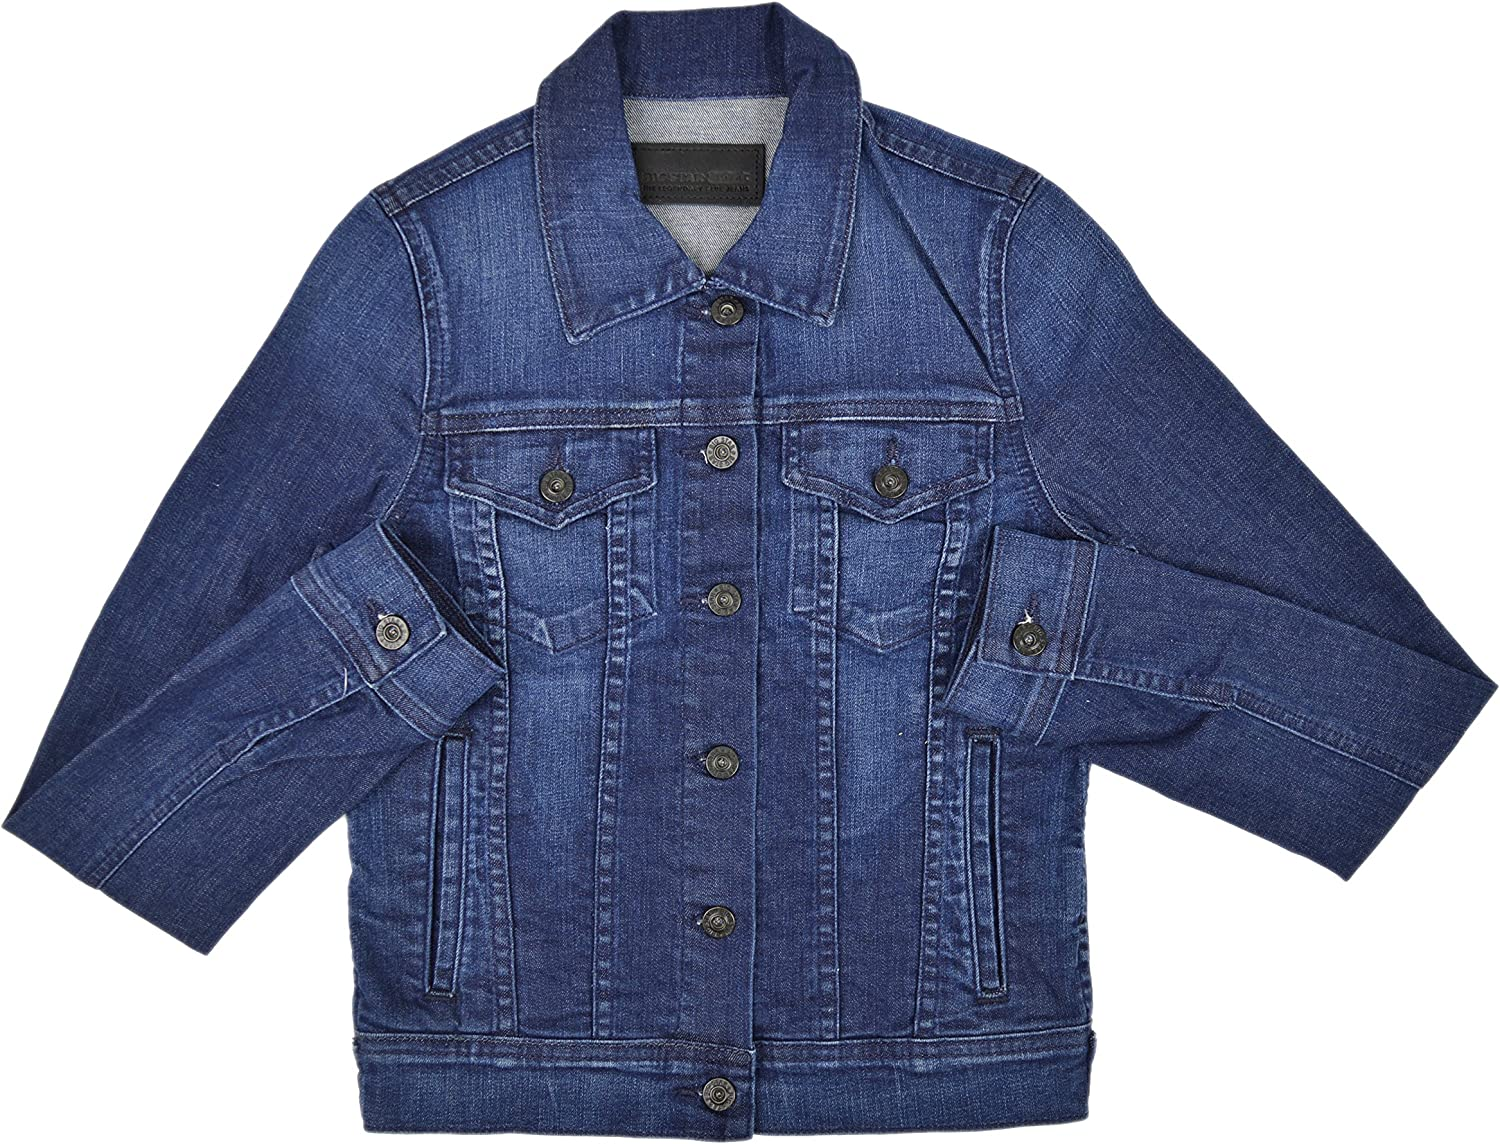 Big Star Women's Cotton Seamed Denim Button Down Jean Jacket Dark Wash XSmall